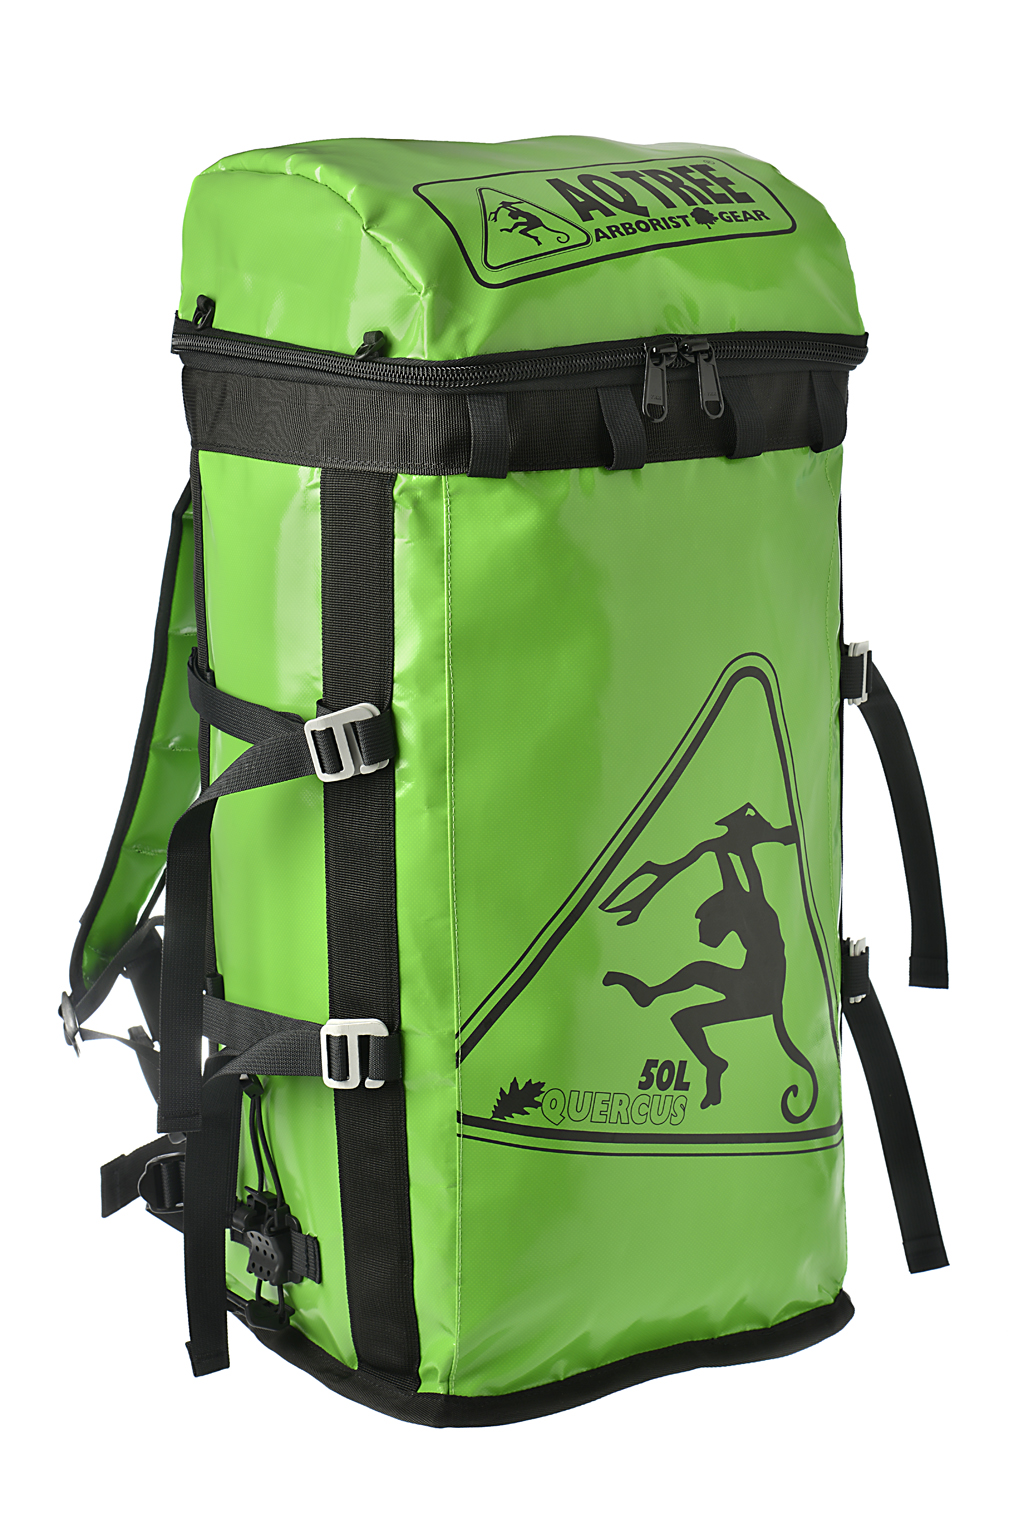 AQ TREE TREECLIMBING QUERCUS 50  BACKPACK